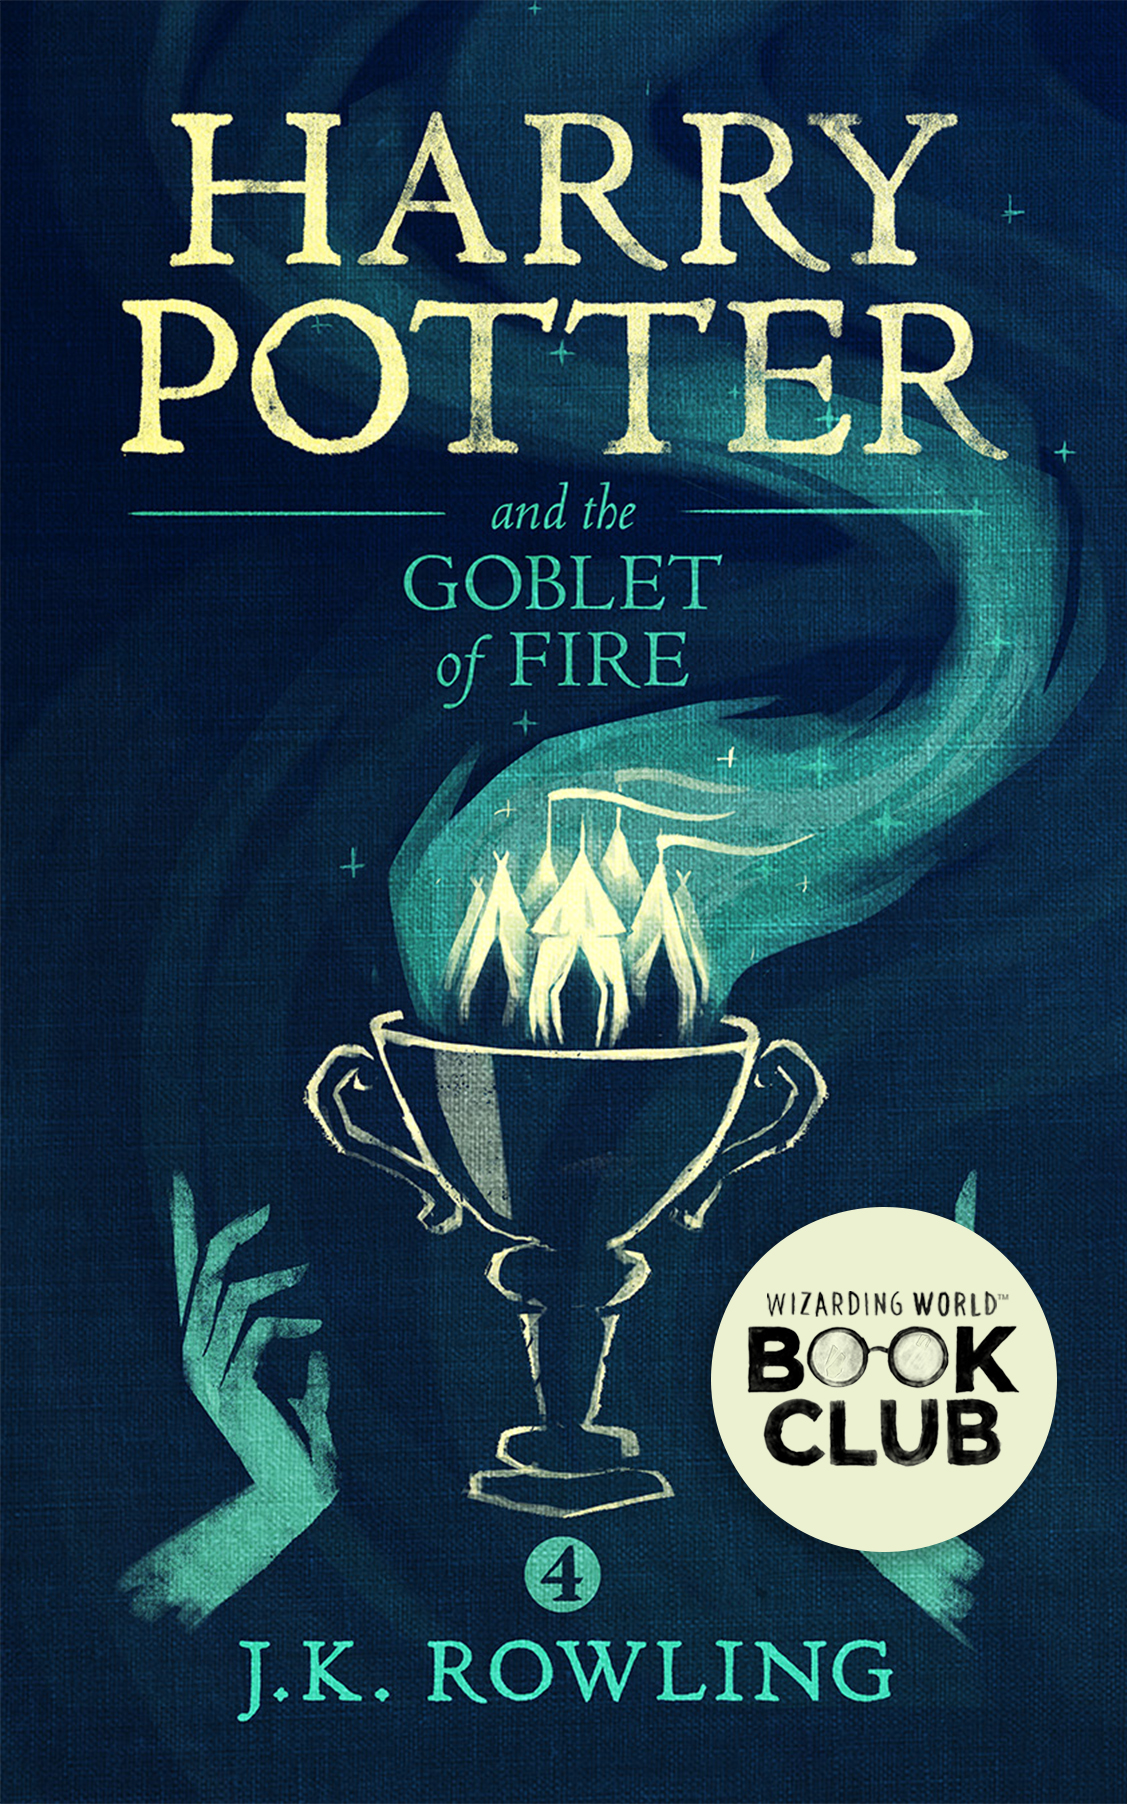 Harry Potter and the Goblet of Fire | Rowling, J.K.